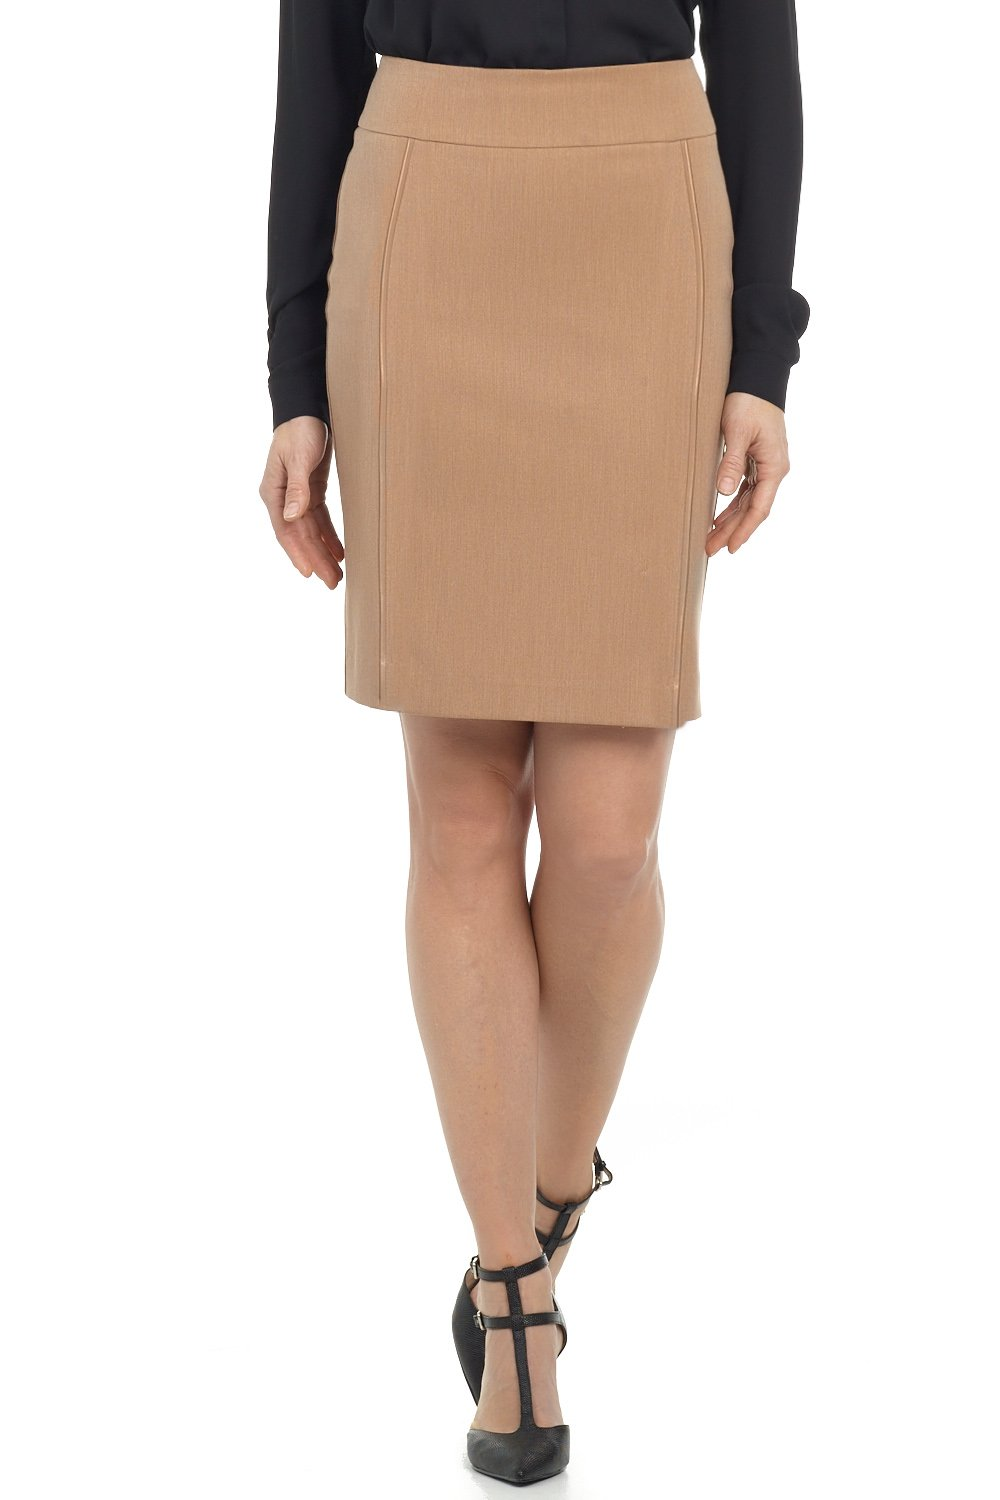 Rekucci Collection Women's Ease in to Comfort Pull-on Pencil Skirt with Piping (6,Camel)